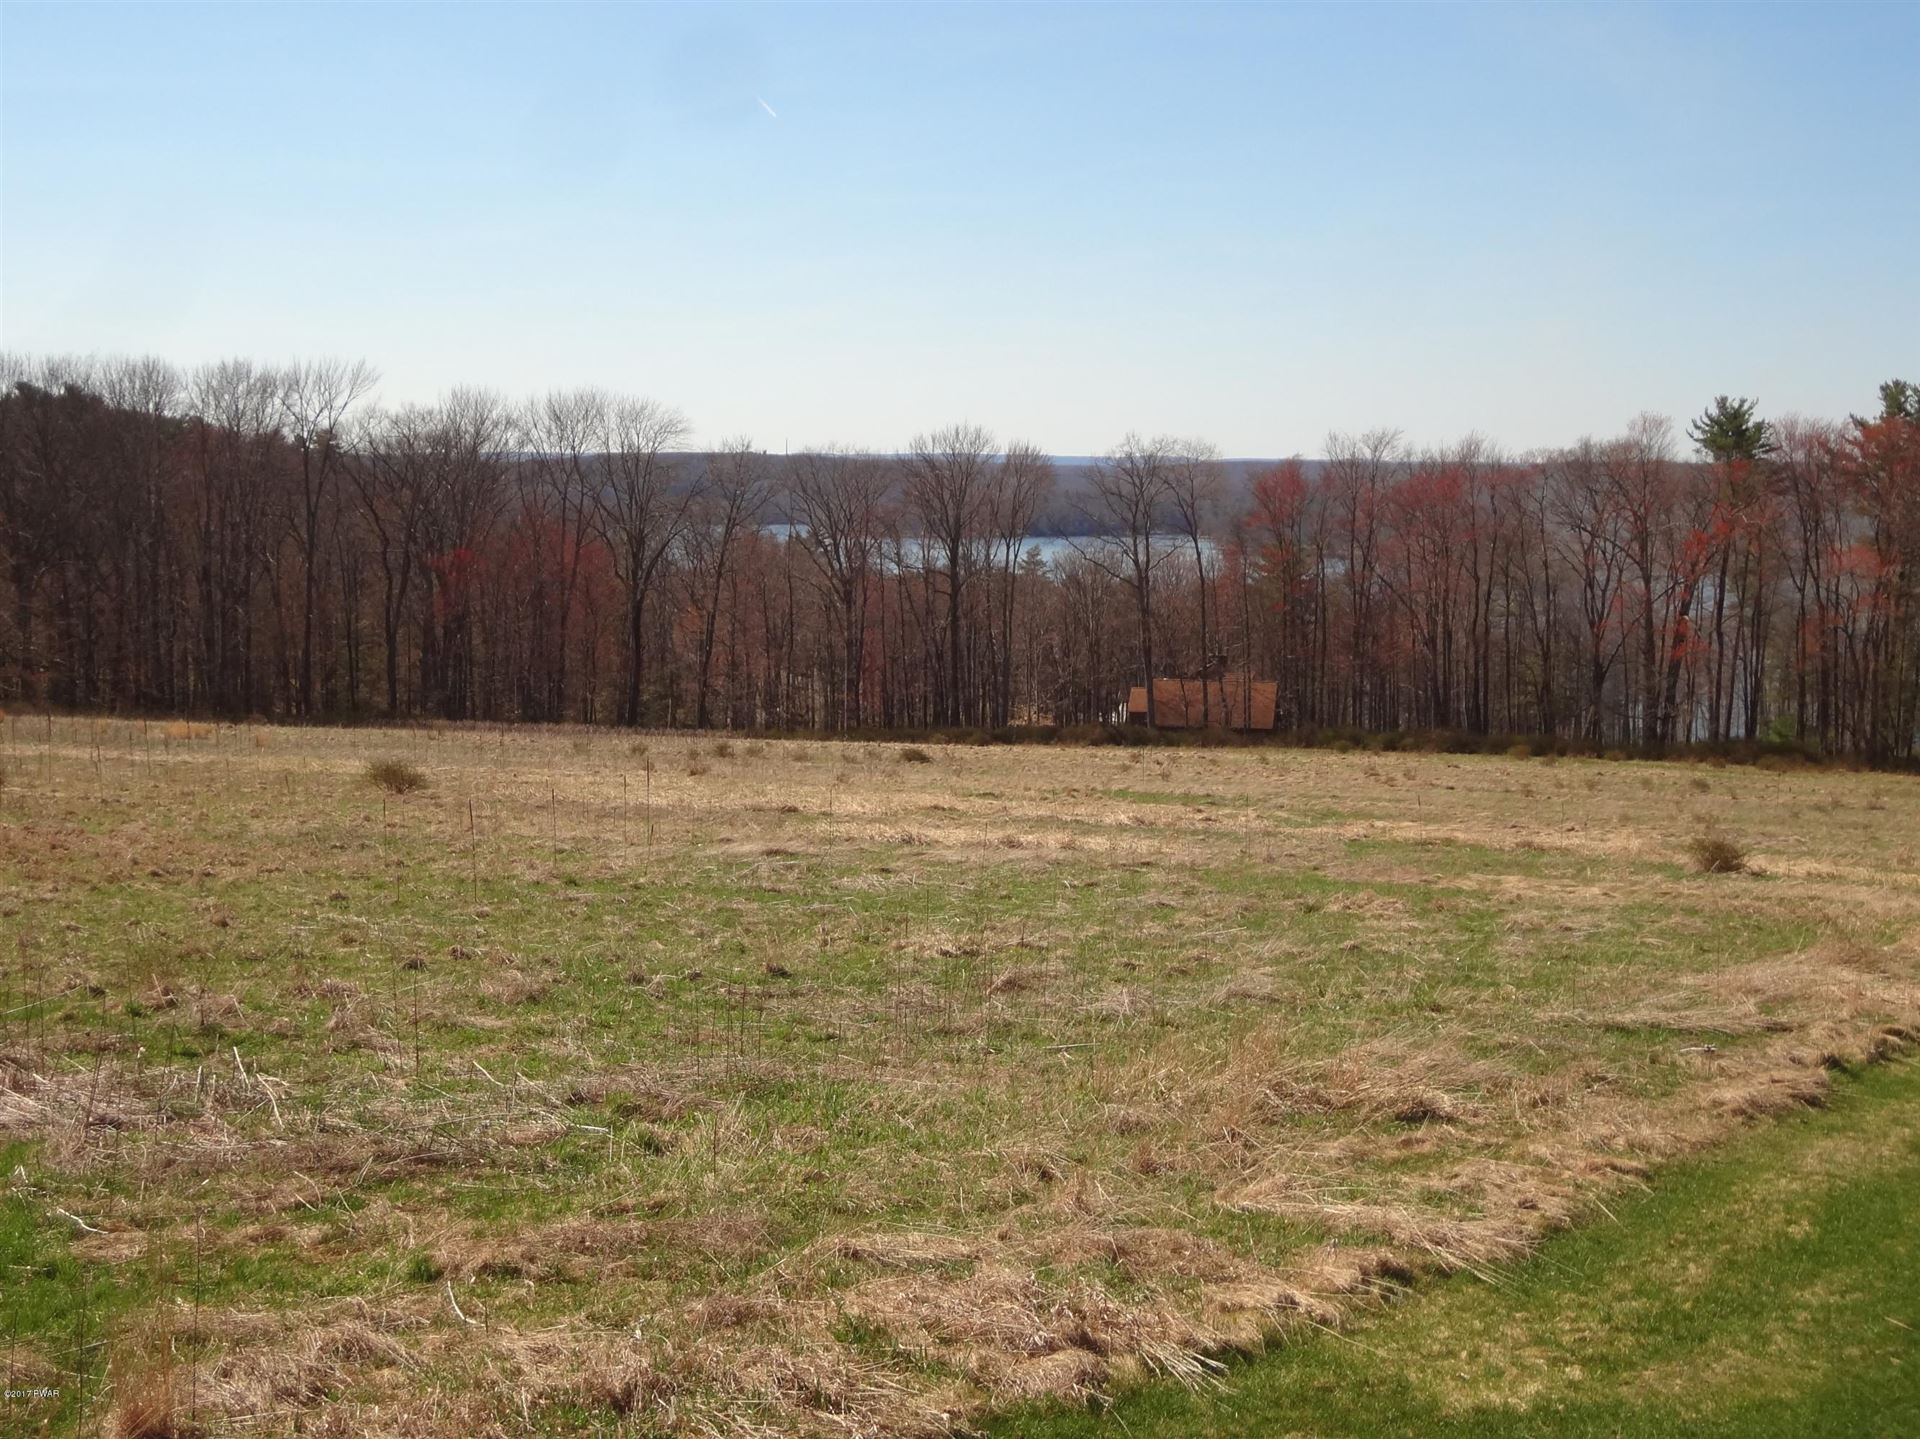 Photo of 21 Calico Point Drive, Paupack, PA 18451 (MLS # 17-1383)